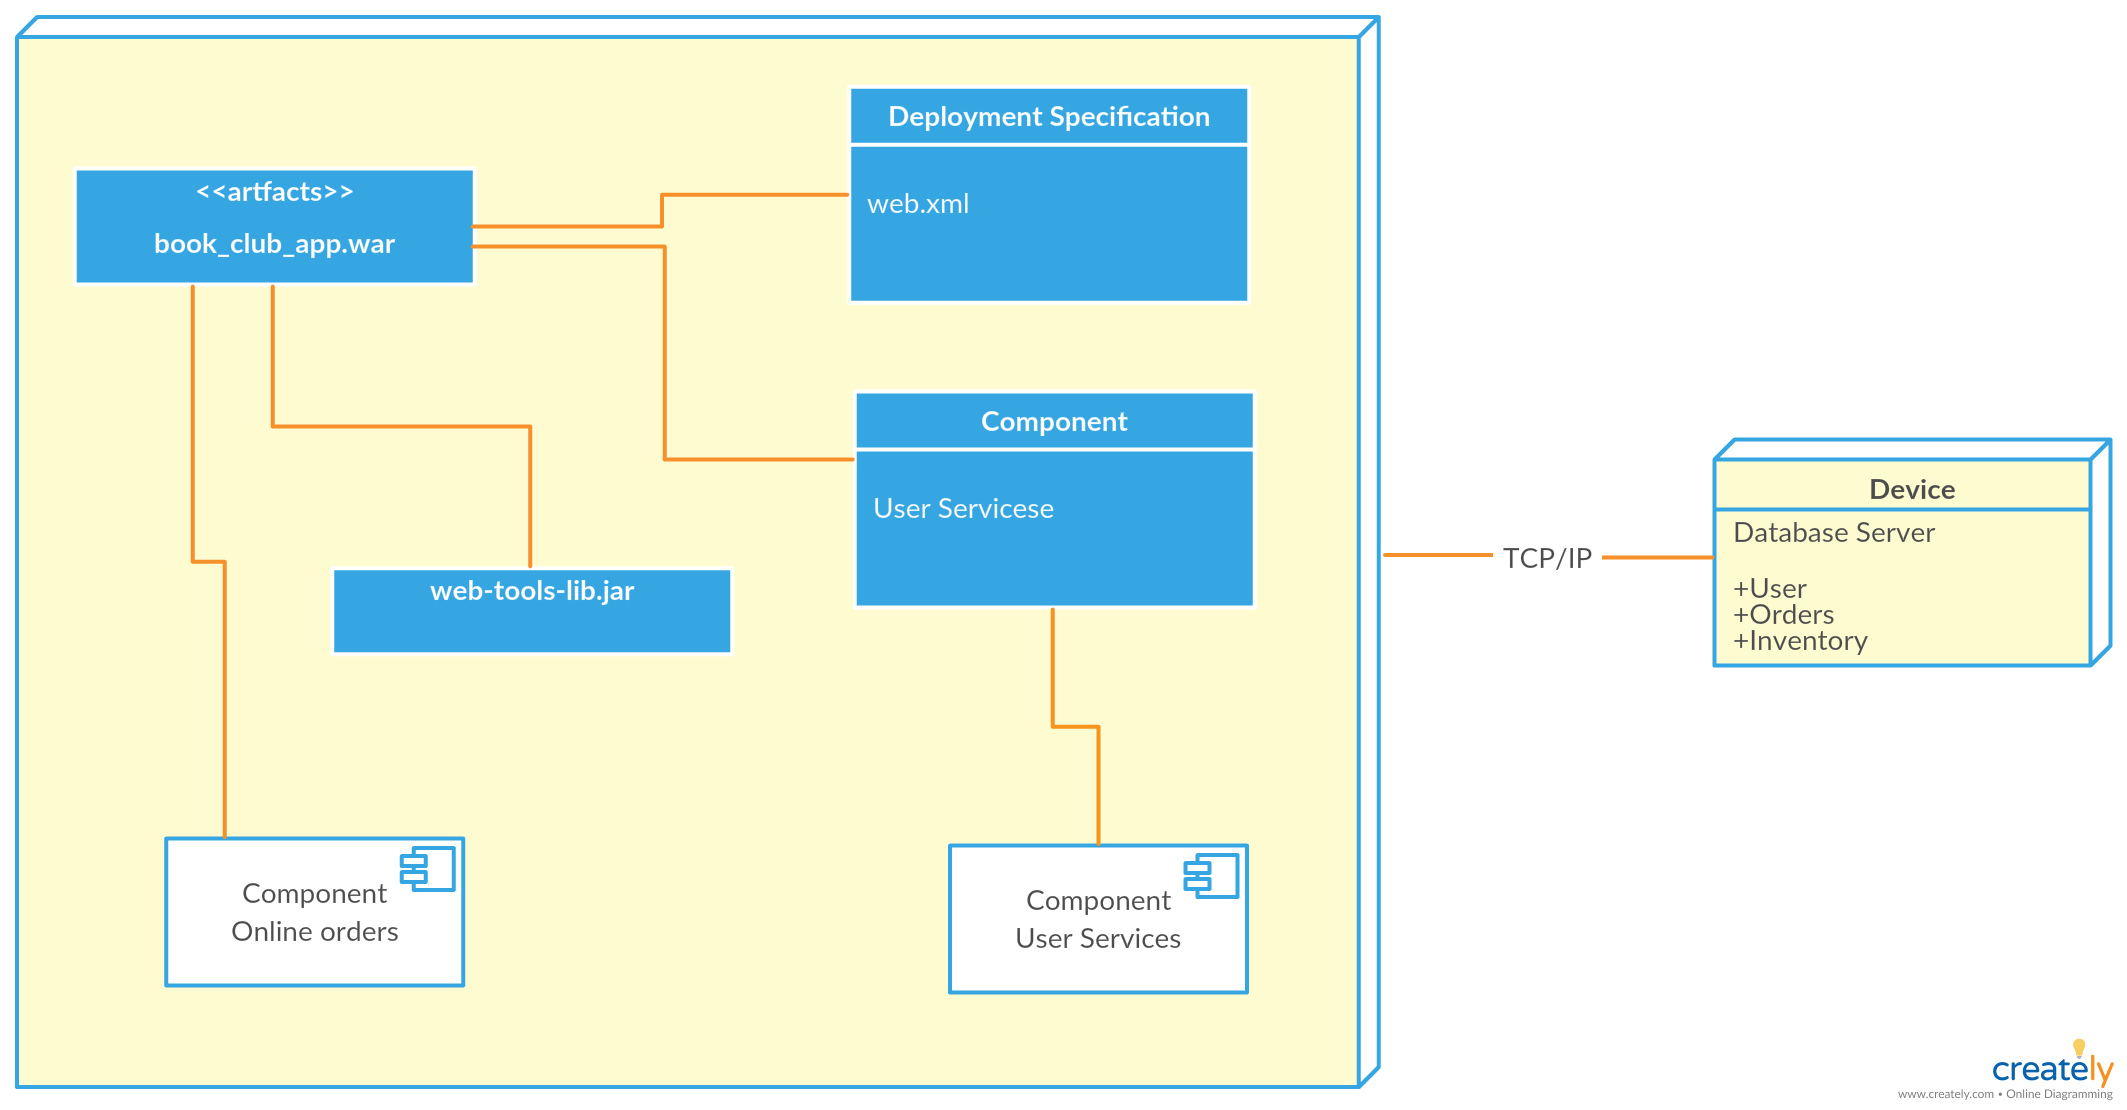 hight resolution of deployment diagram for online shopping system deployment diagram template illustrates the online shopping system